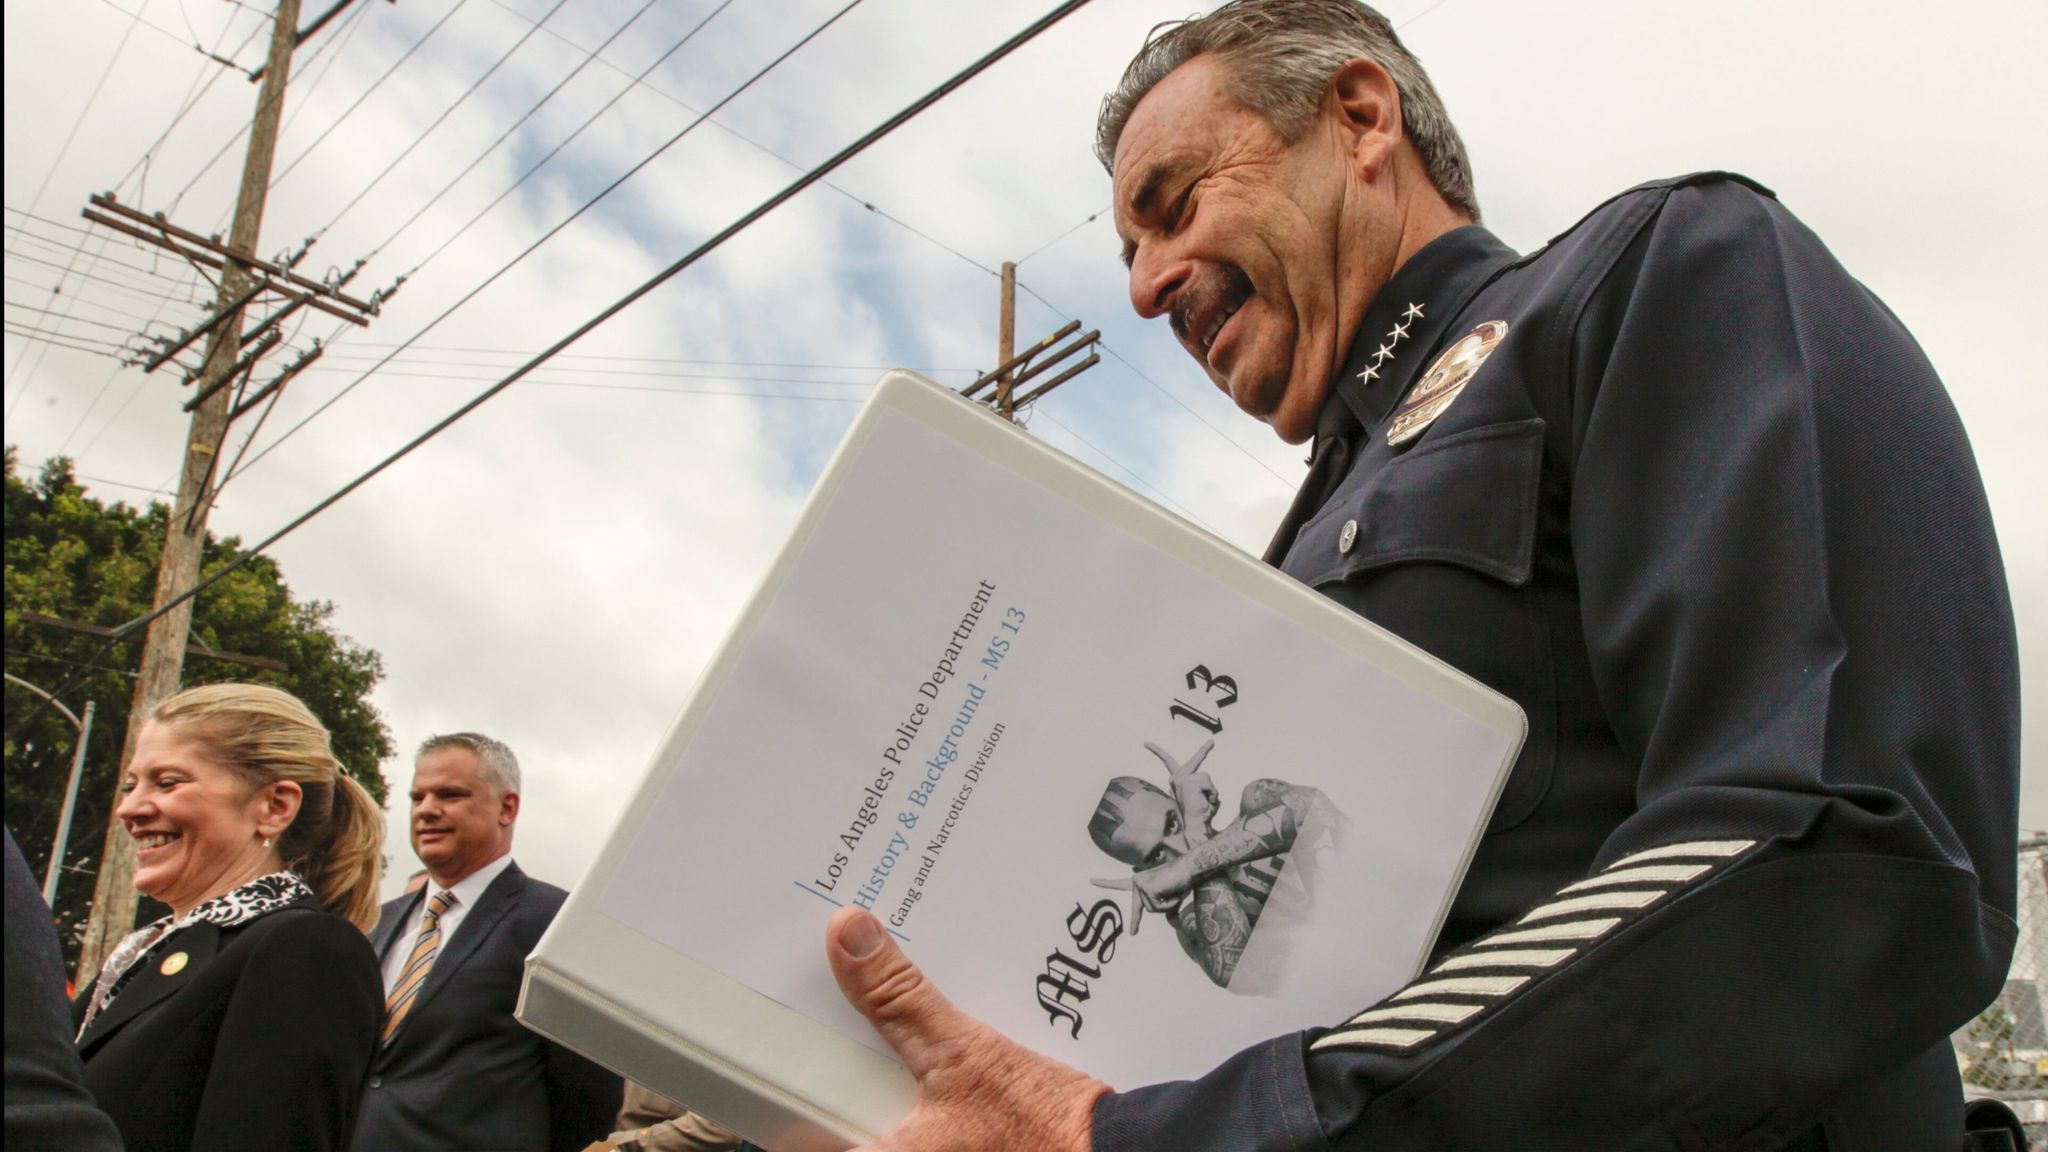 LAPD chief Charlie Beck reads the research on MS-13 gang before addressing a press conference.